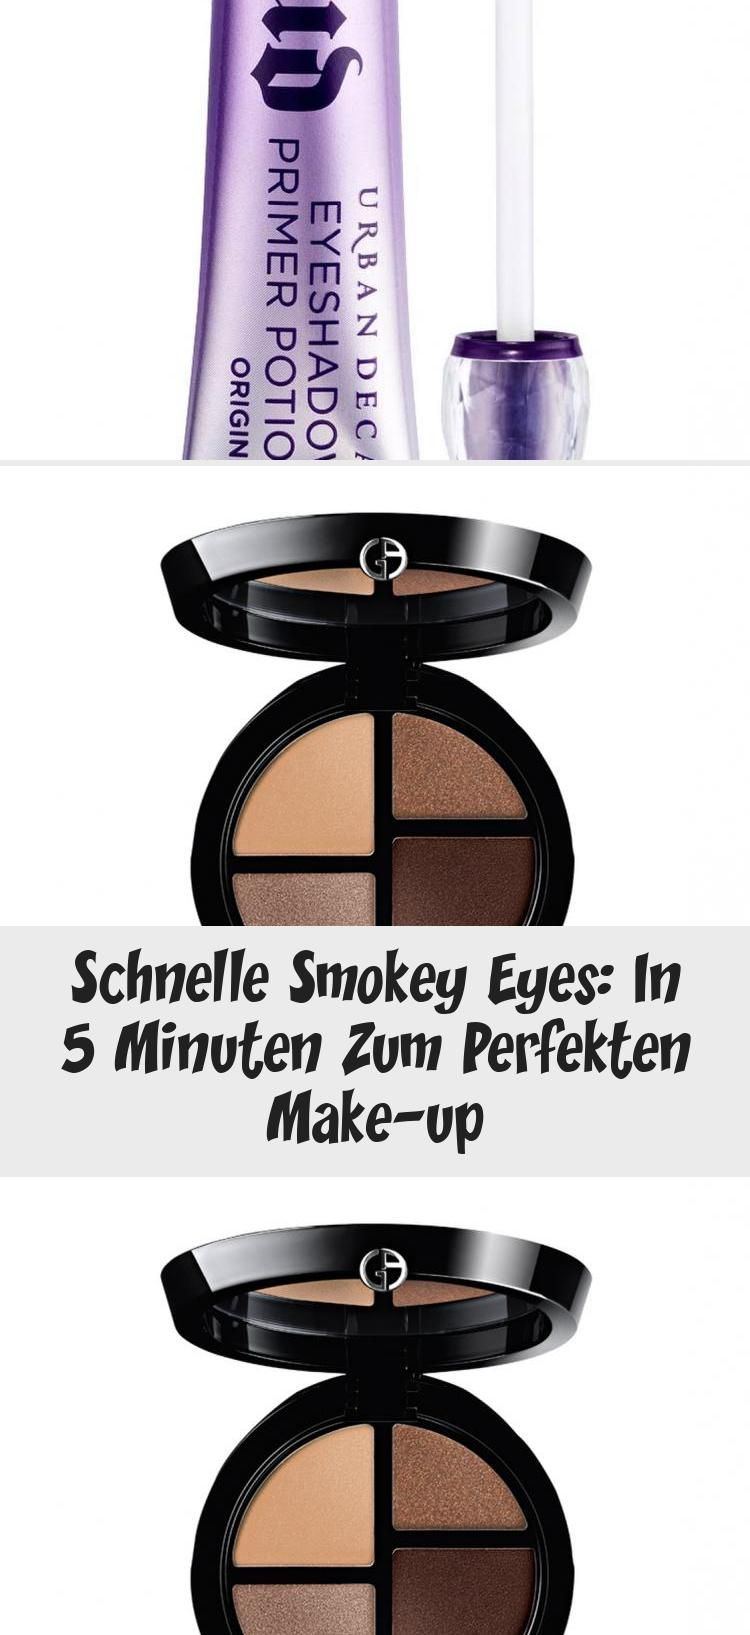 Photo of Fast Smokey Eyes: The perfect make-up – in 5 minutes